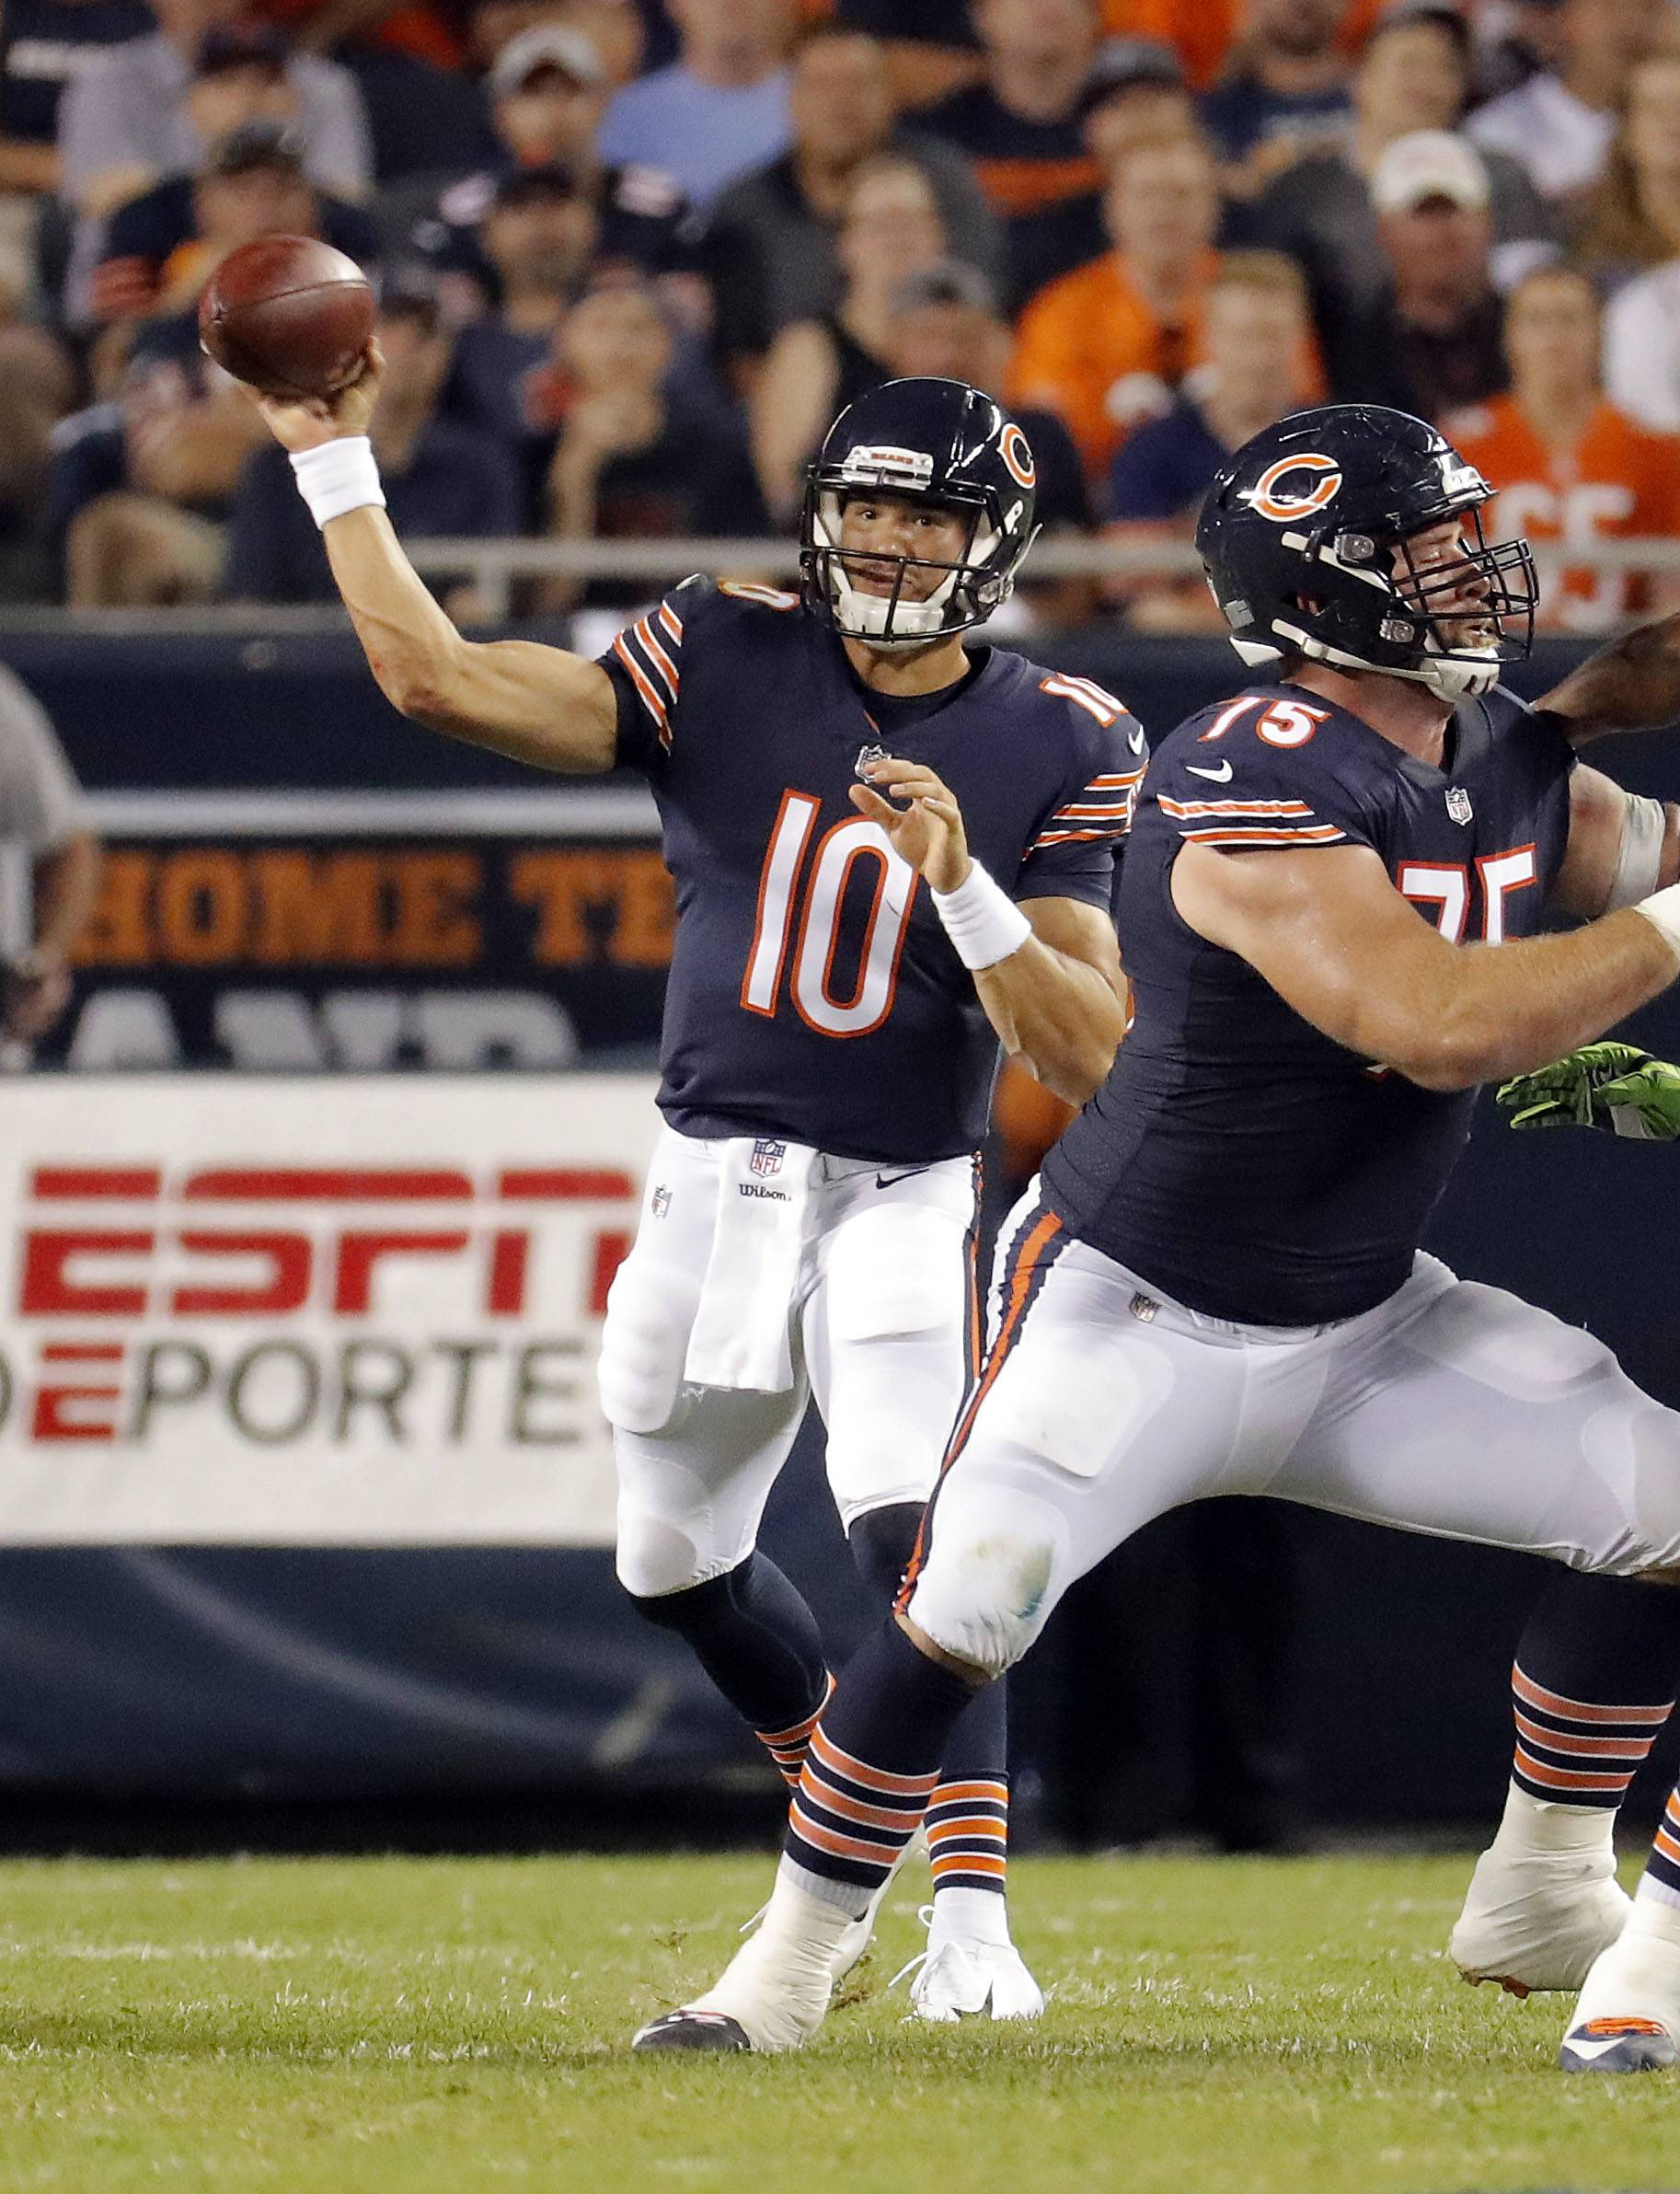 Kyle Long clears the way for Mitchell Trubisky during the Bears' win Monday night at Soldier Field.